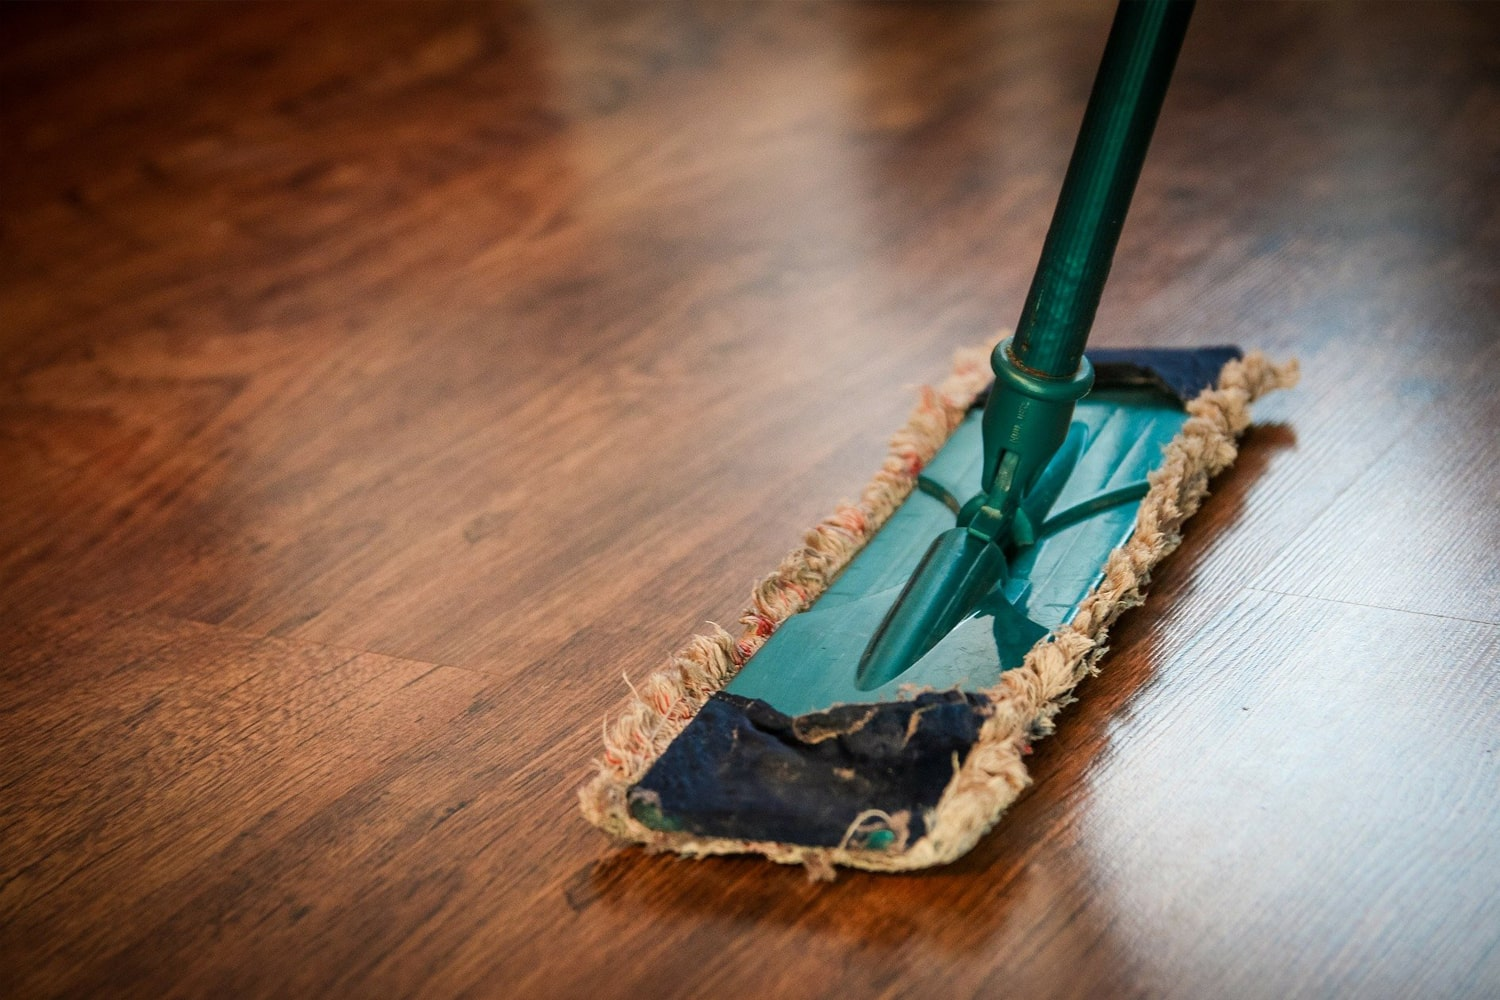 Cleaning and maintaining a home involves a day-to-day routine. Plan one so that your beautiful home is kept clean and comfortable at all times.